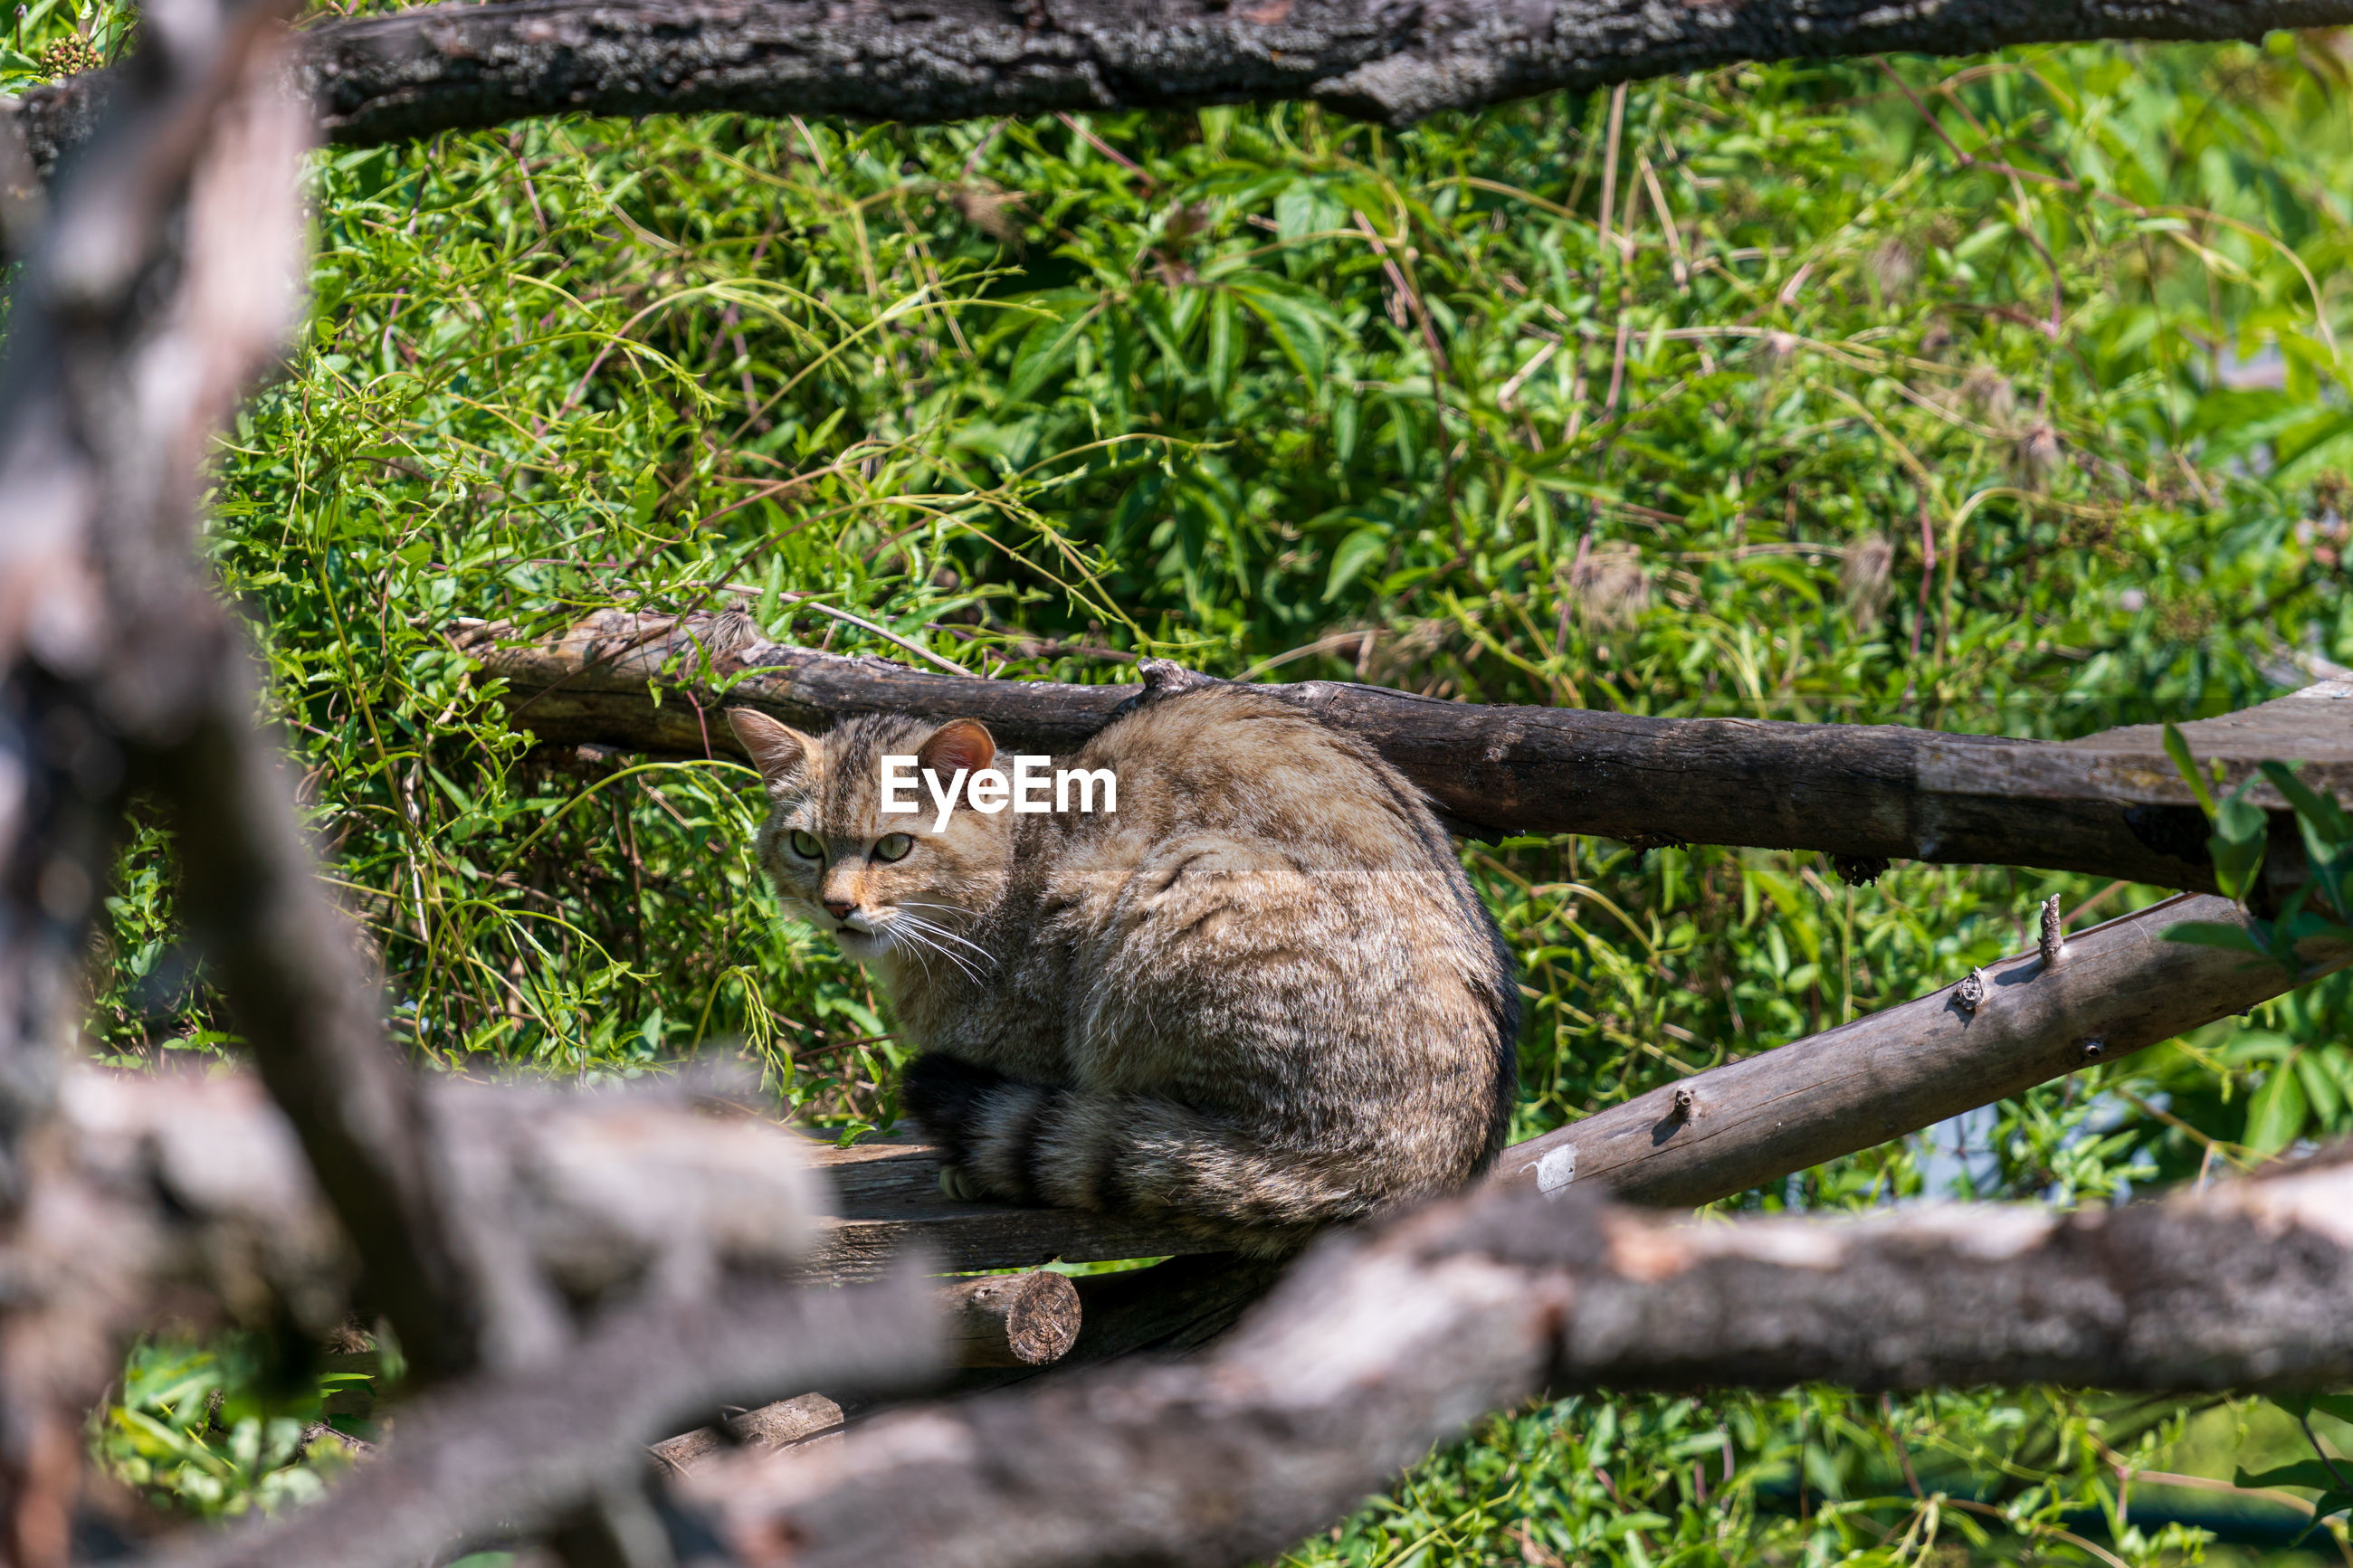 VIEW OF A CAT SITTING ON TREE